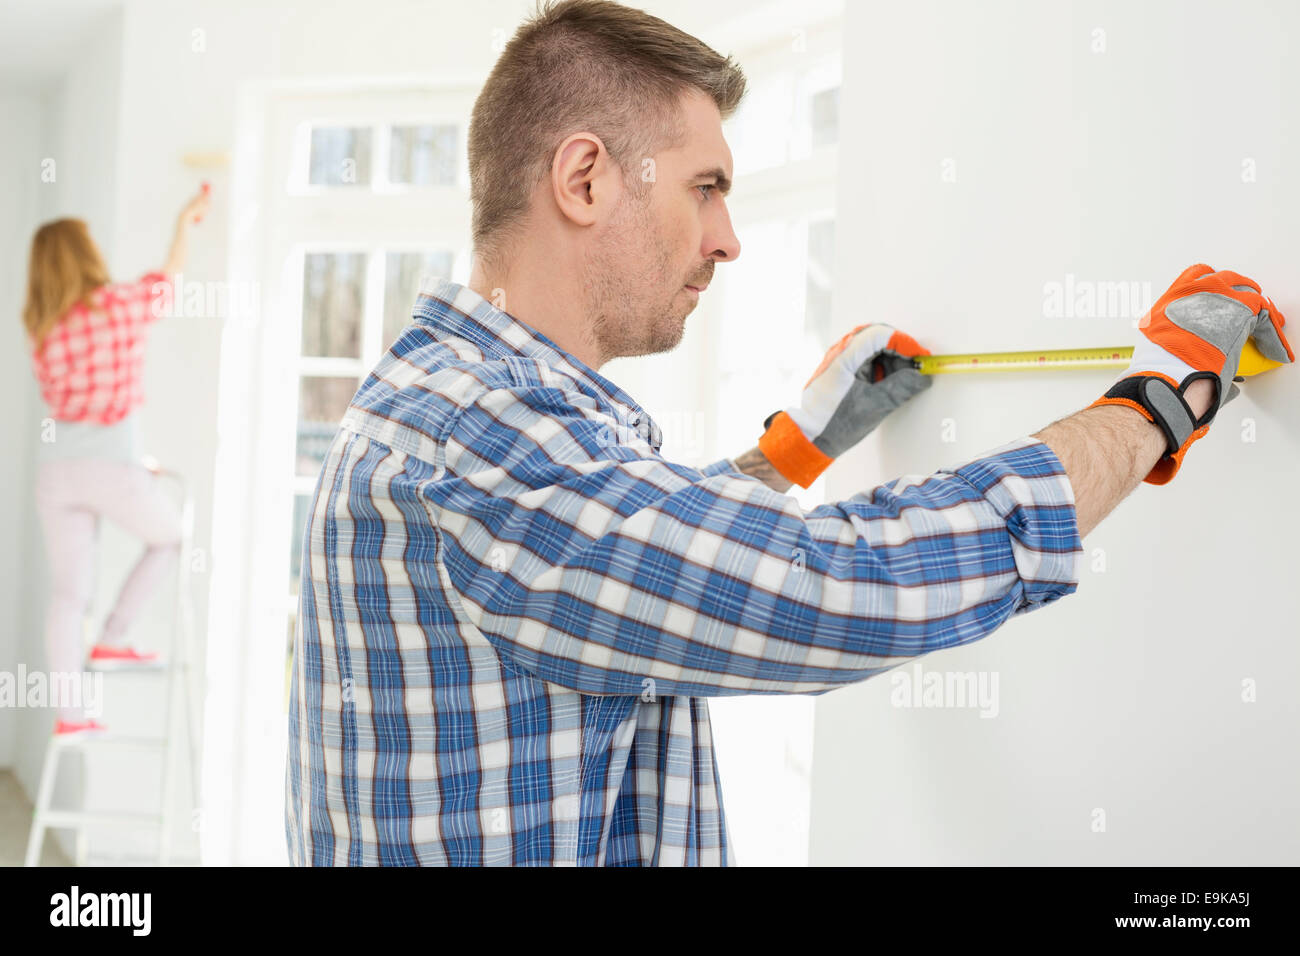 Man measuring wall with woman painting in background - Stock Image